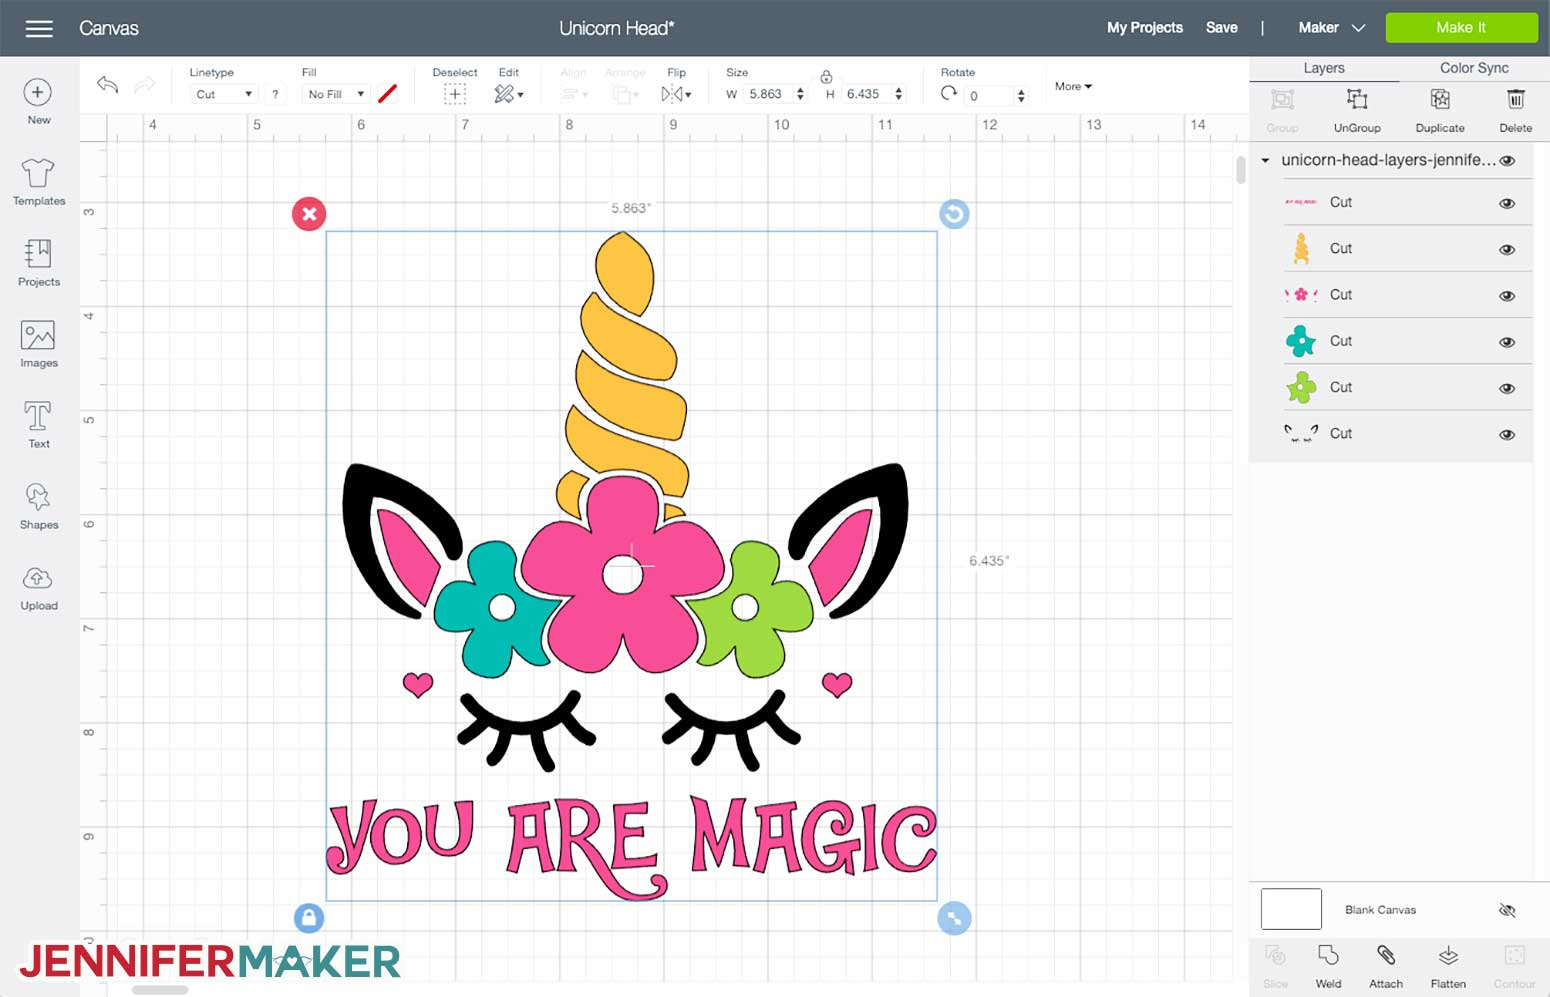 Cute Unicorn SVG uploaded to Cricut Design Space